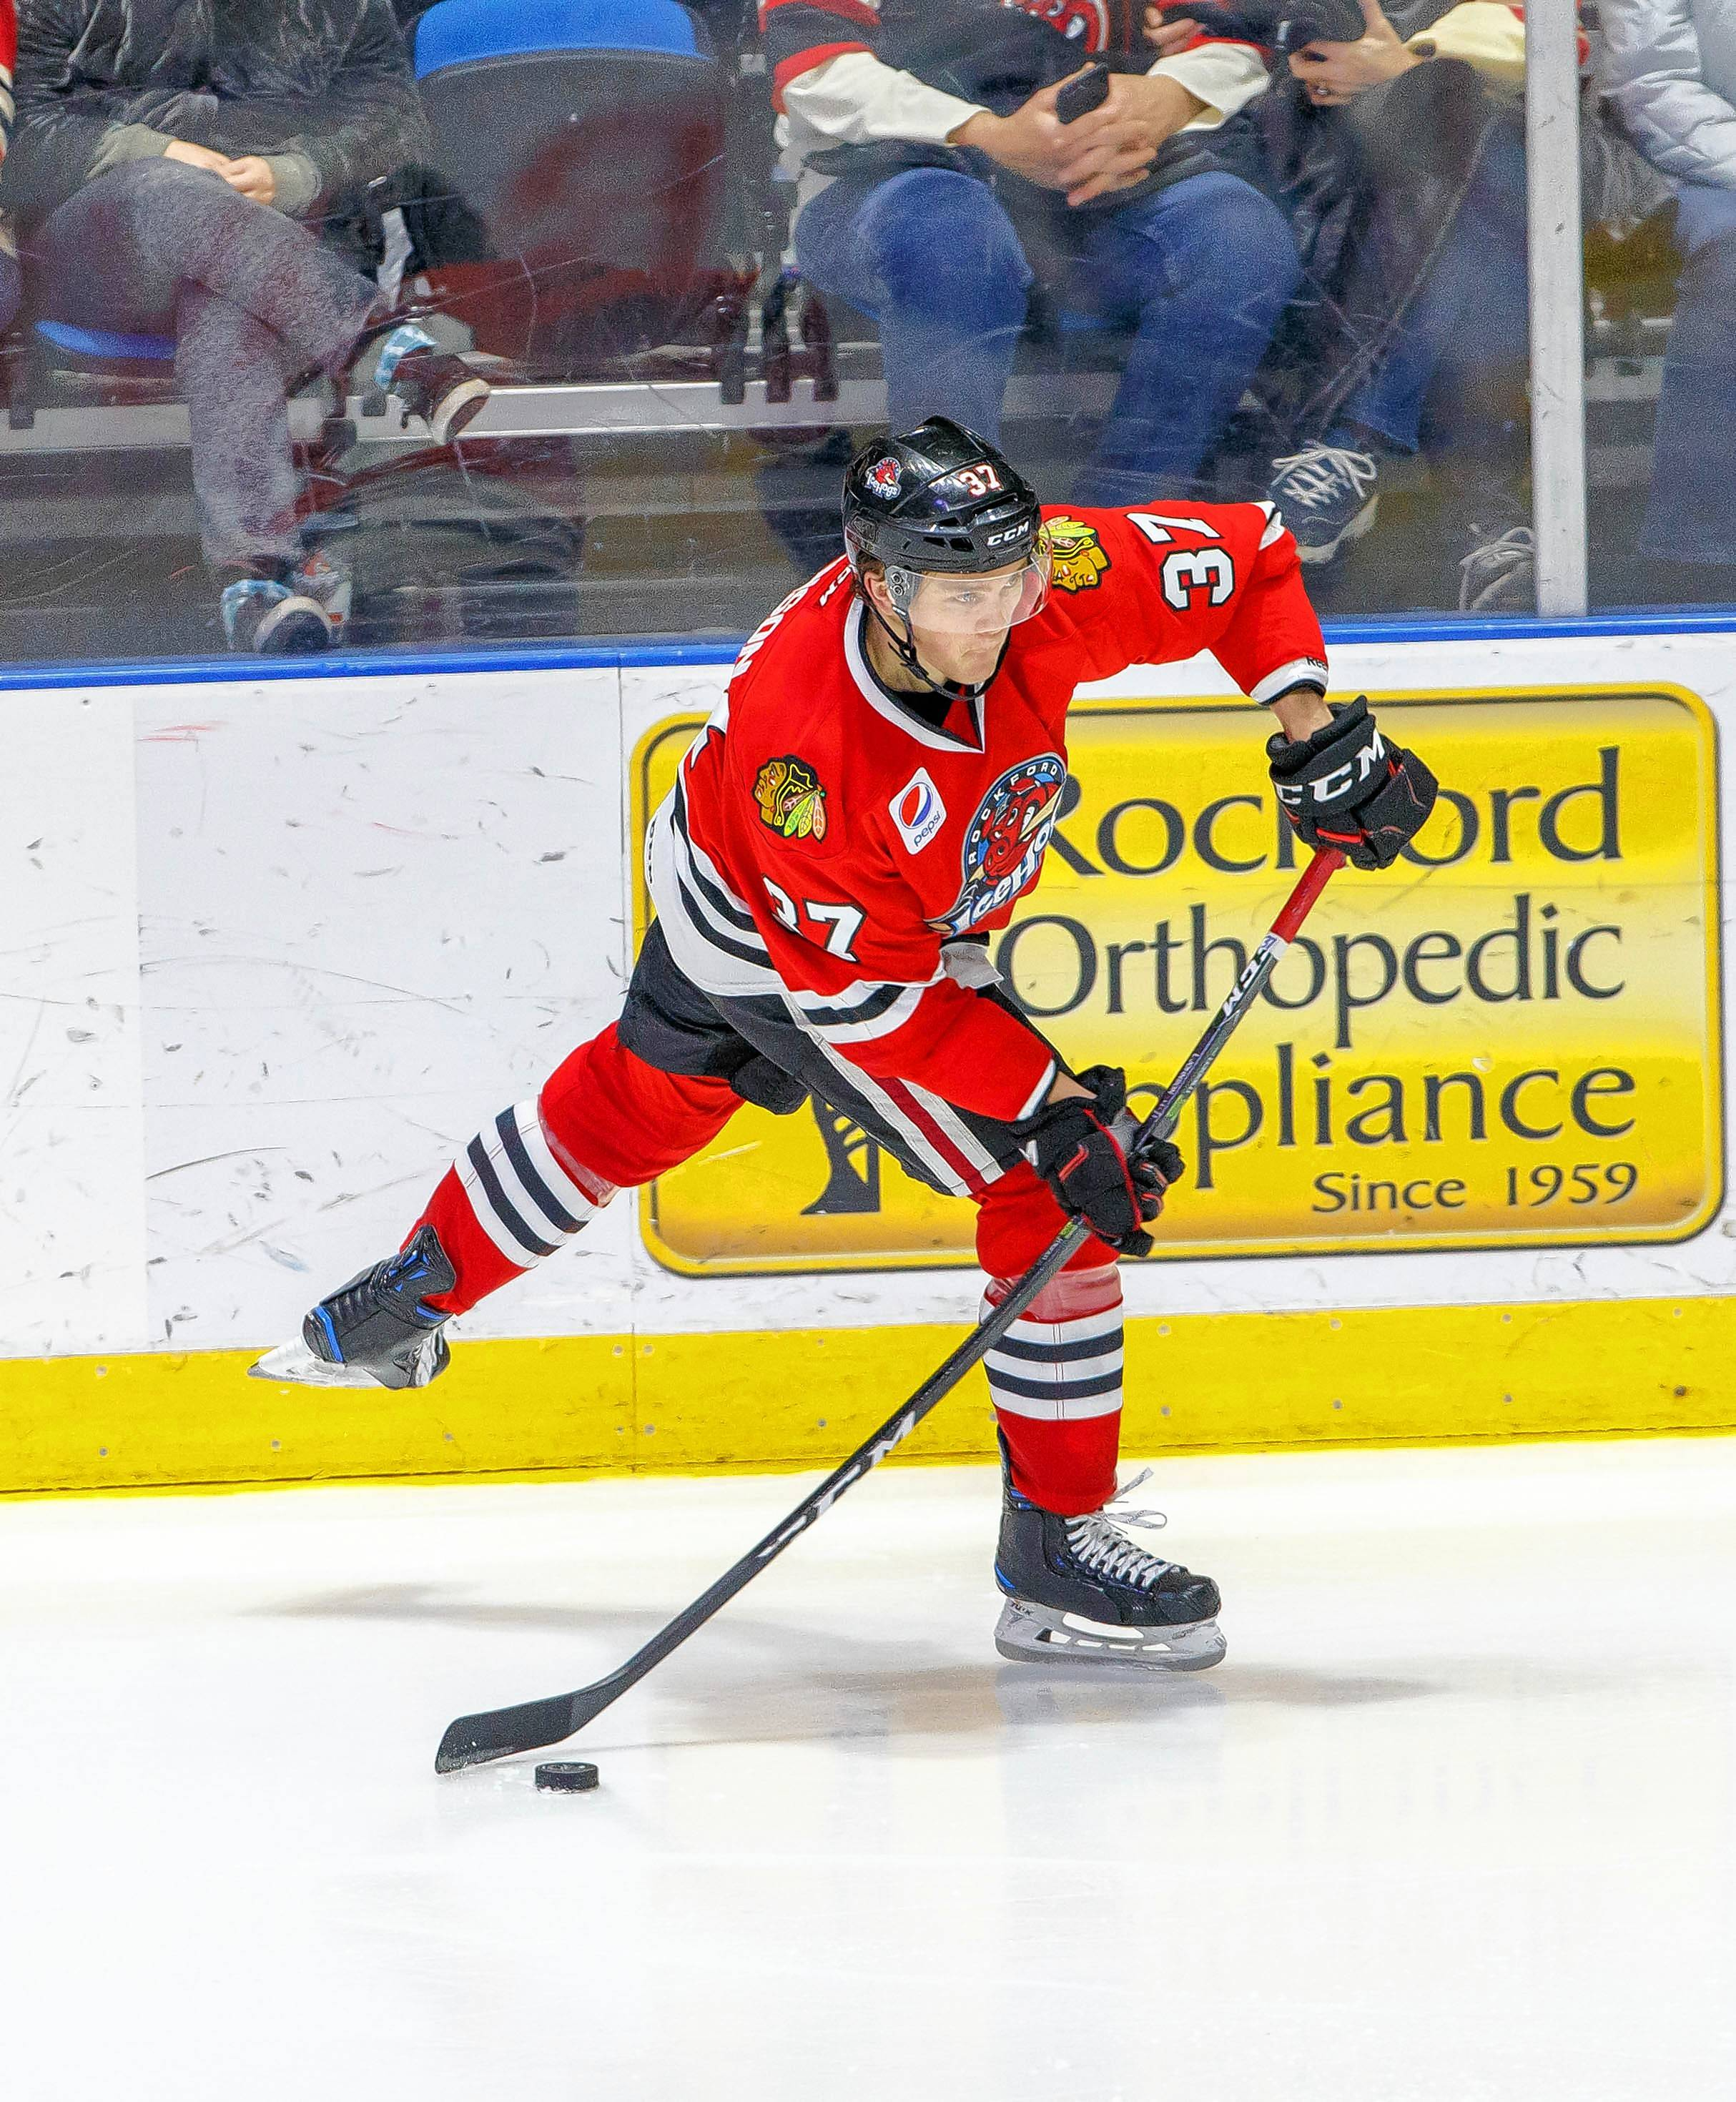 Luke Johnson, who won a national title at North Dakota, is one win away from helping the Chicago IceHogs advance to the Western Conference finals of the Calder Cup playofs.